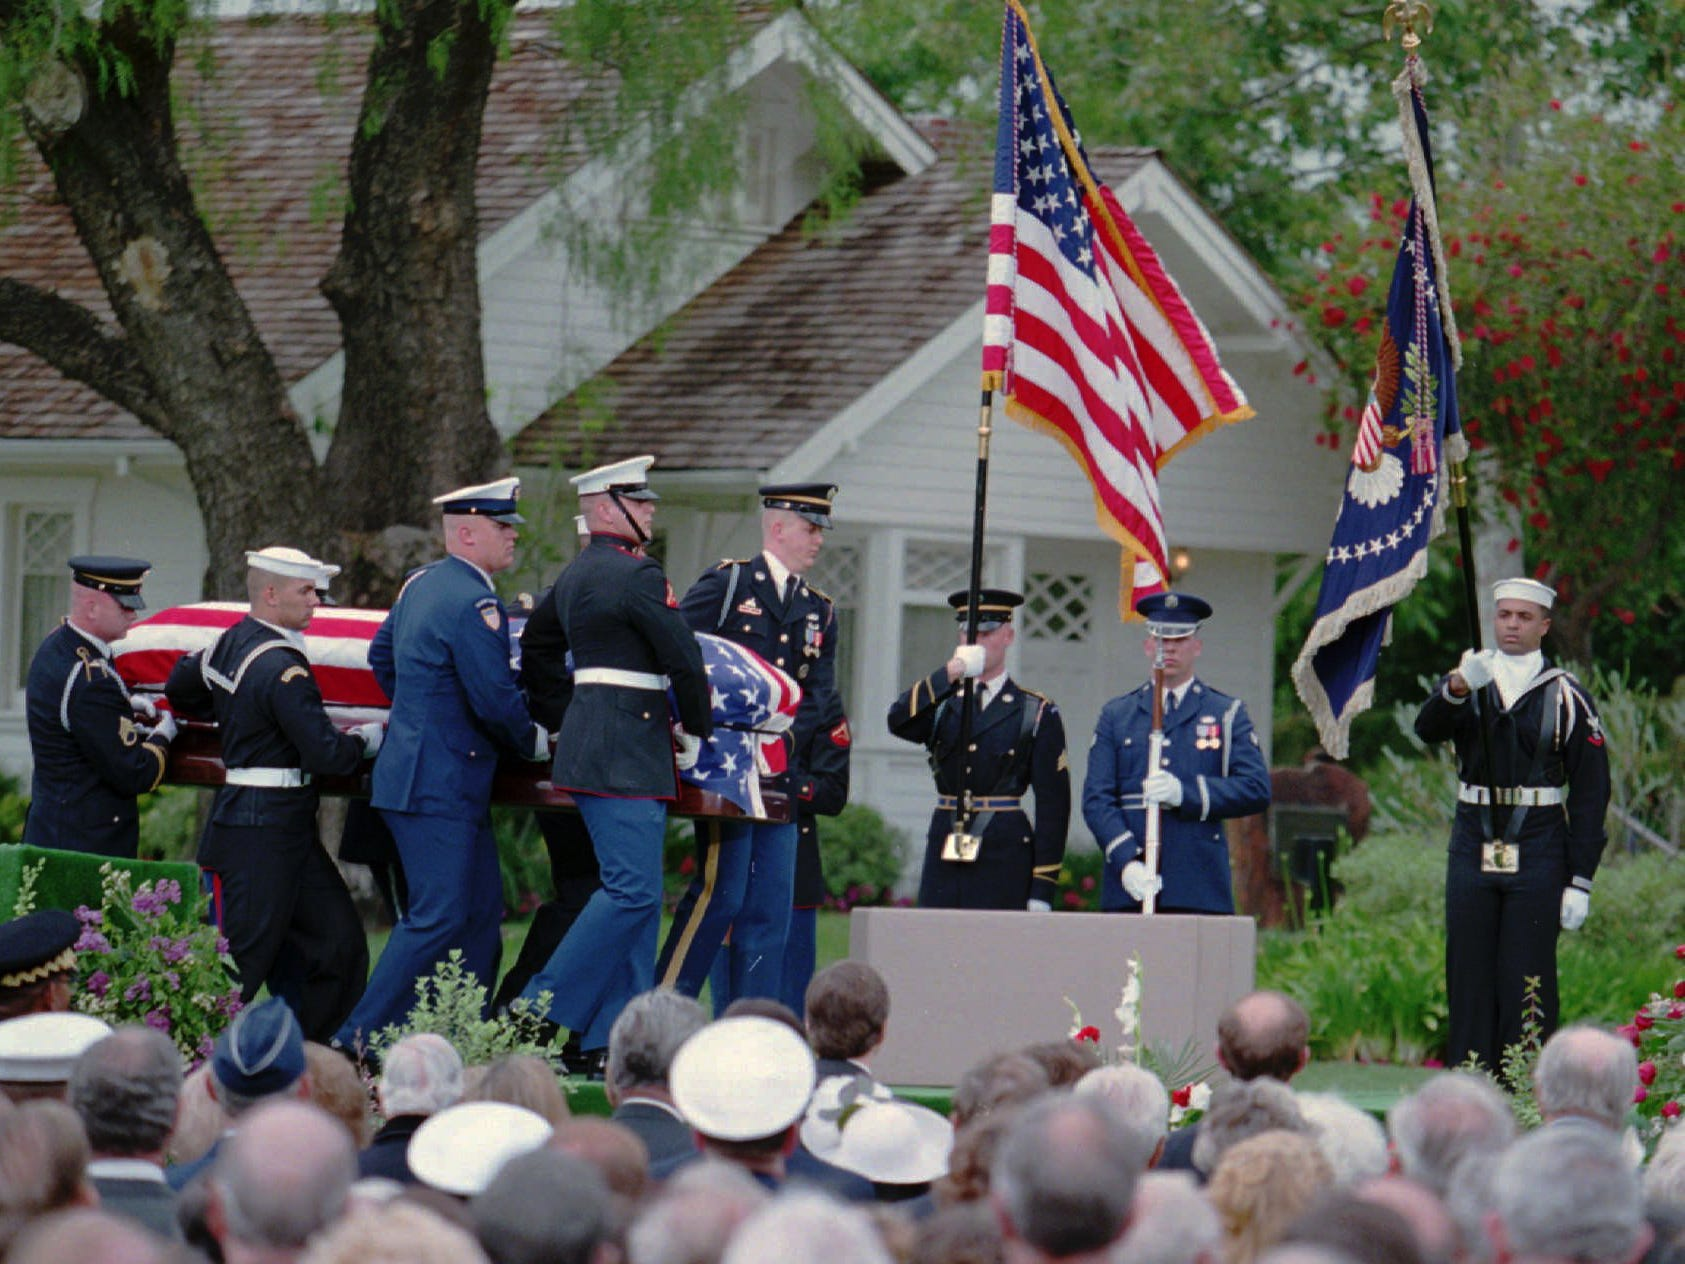 The casket of Richard Nixon is delivered to funeral services by a military honor guard at the Nixon Library in Yorba Linda, Calif., on April 27, 1994.